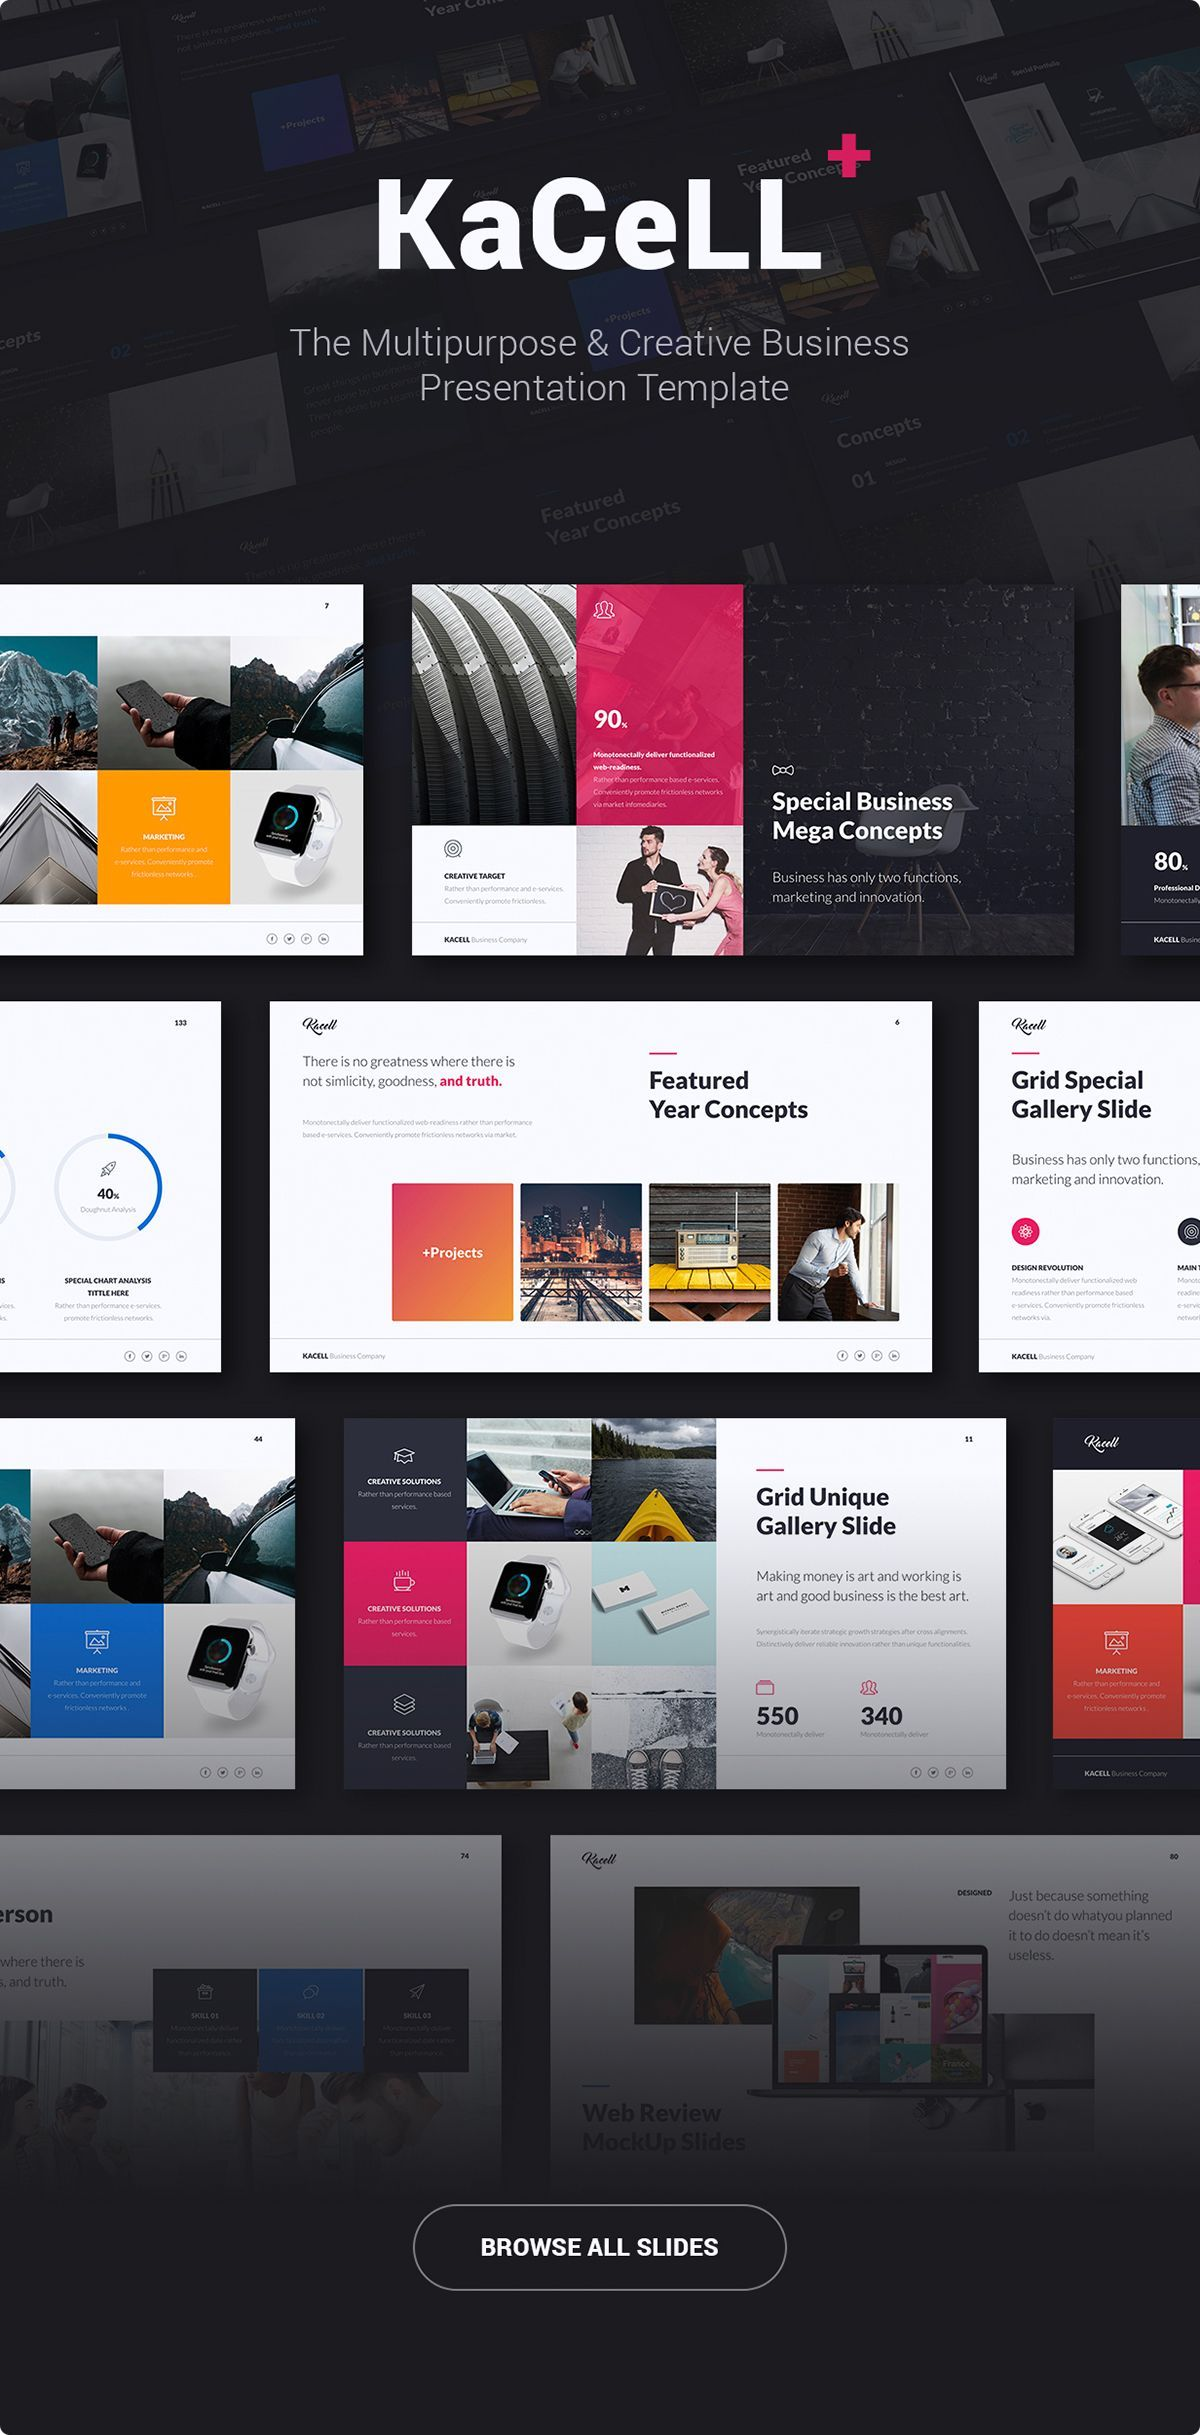 About Udea Agency First Of All We Really Appreciate You Visiting Our Profile Udea Agency Business Template Web App Design Business Presentation Templates